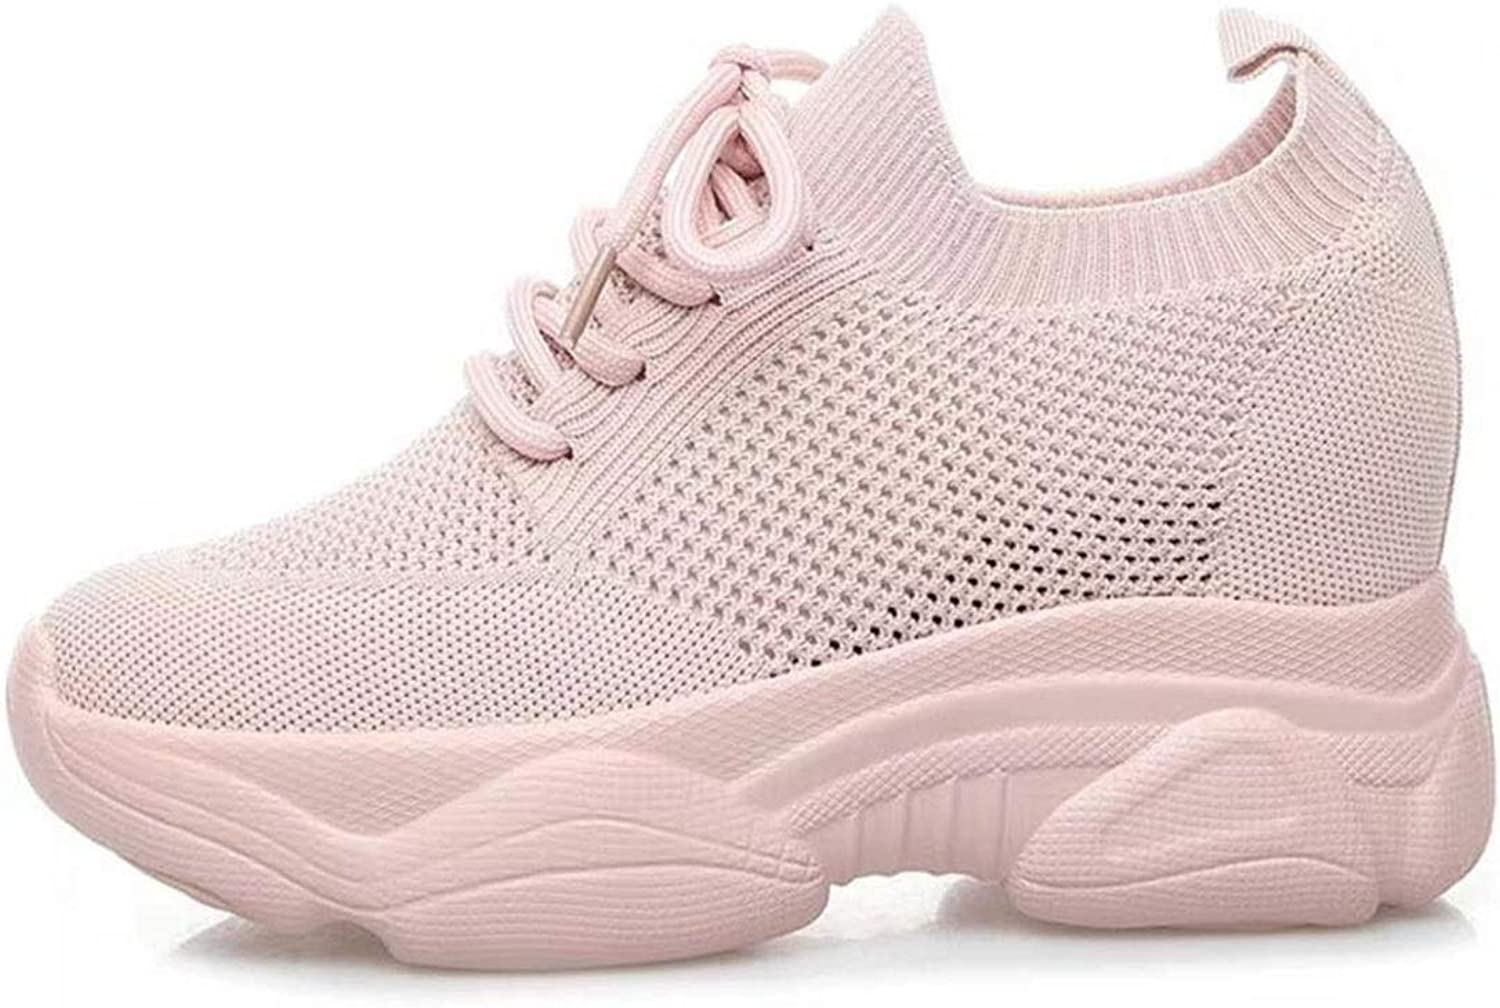 Womens Knit Breathable Sneaker Casual Slip On Comfortable Soles Running Sports shoes Lightweight Walking shoes Womens Knit Breathable Sneaker Casual Slip On Comfortable Soles Running Sports shoes